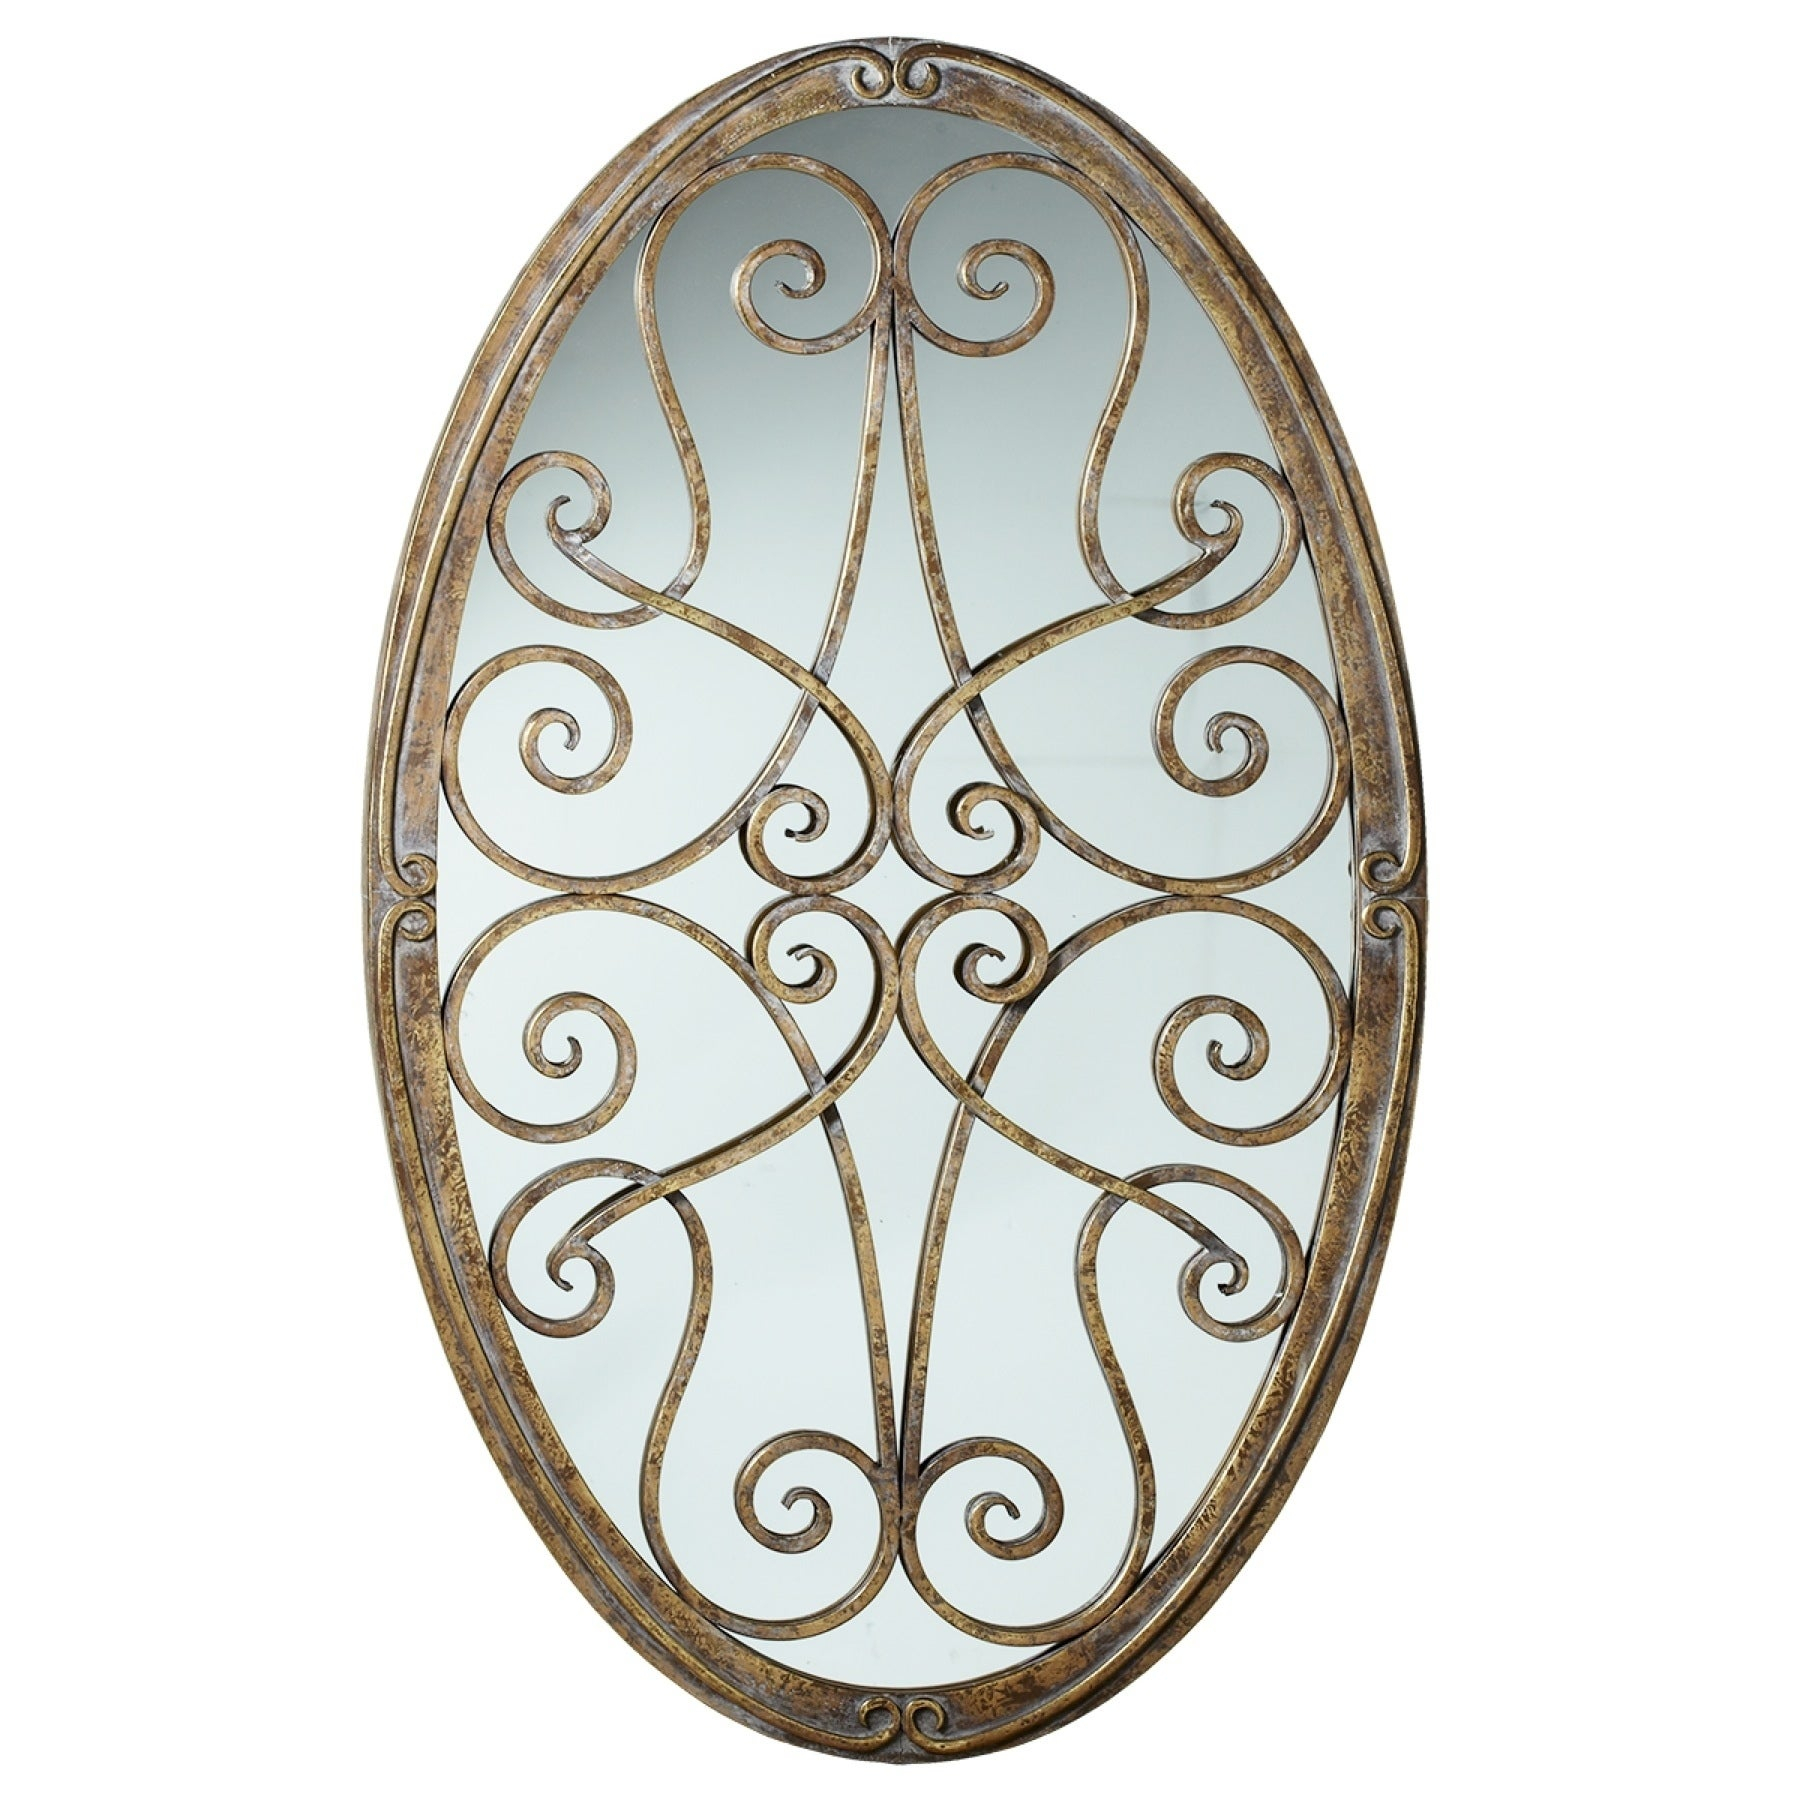 Framed Oval Scroll Wall Decor With Mirror. for Scroll Framed Wall Decor (Image 8 of 30)